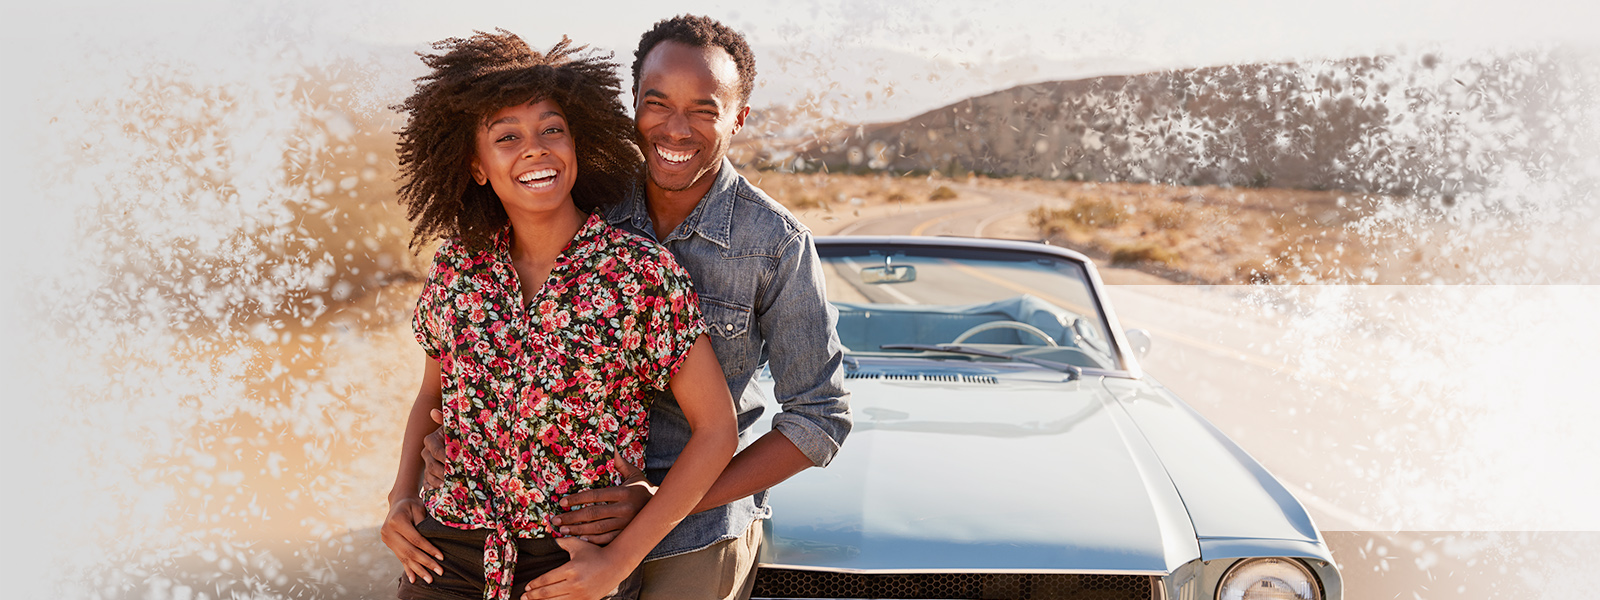 Couple smiling next to their new car